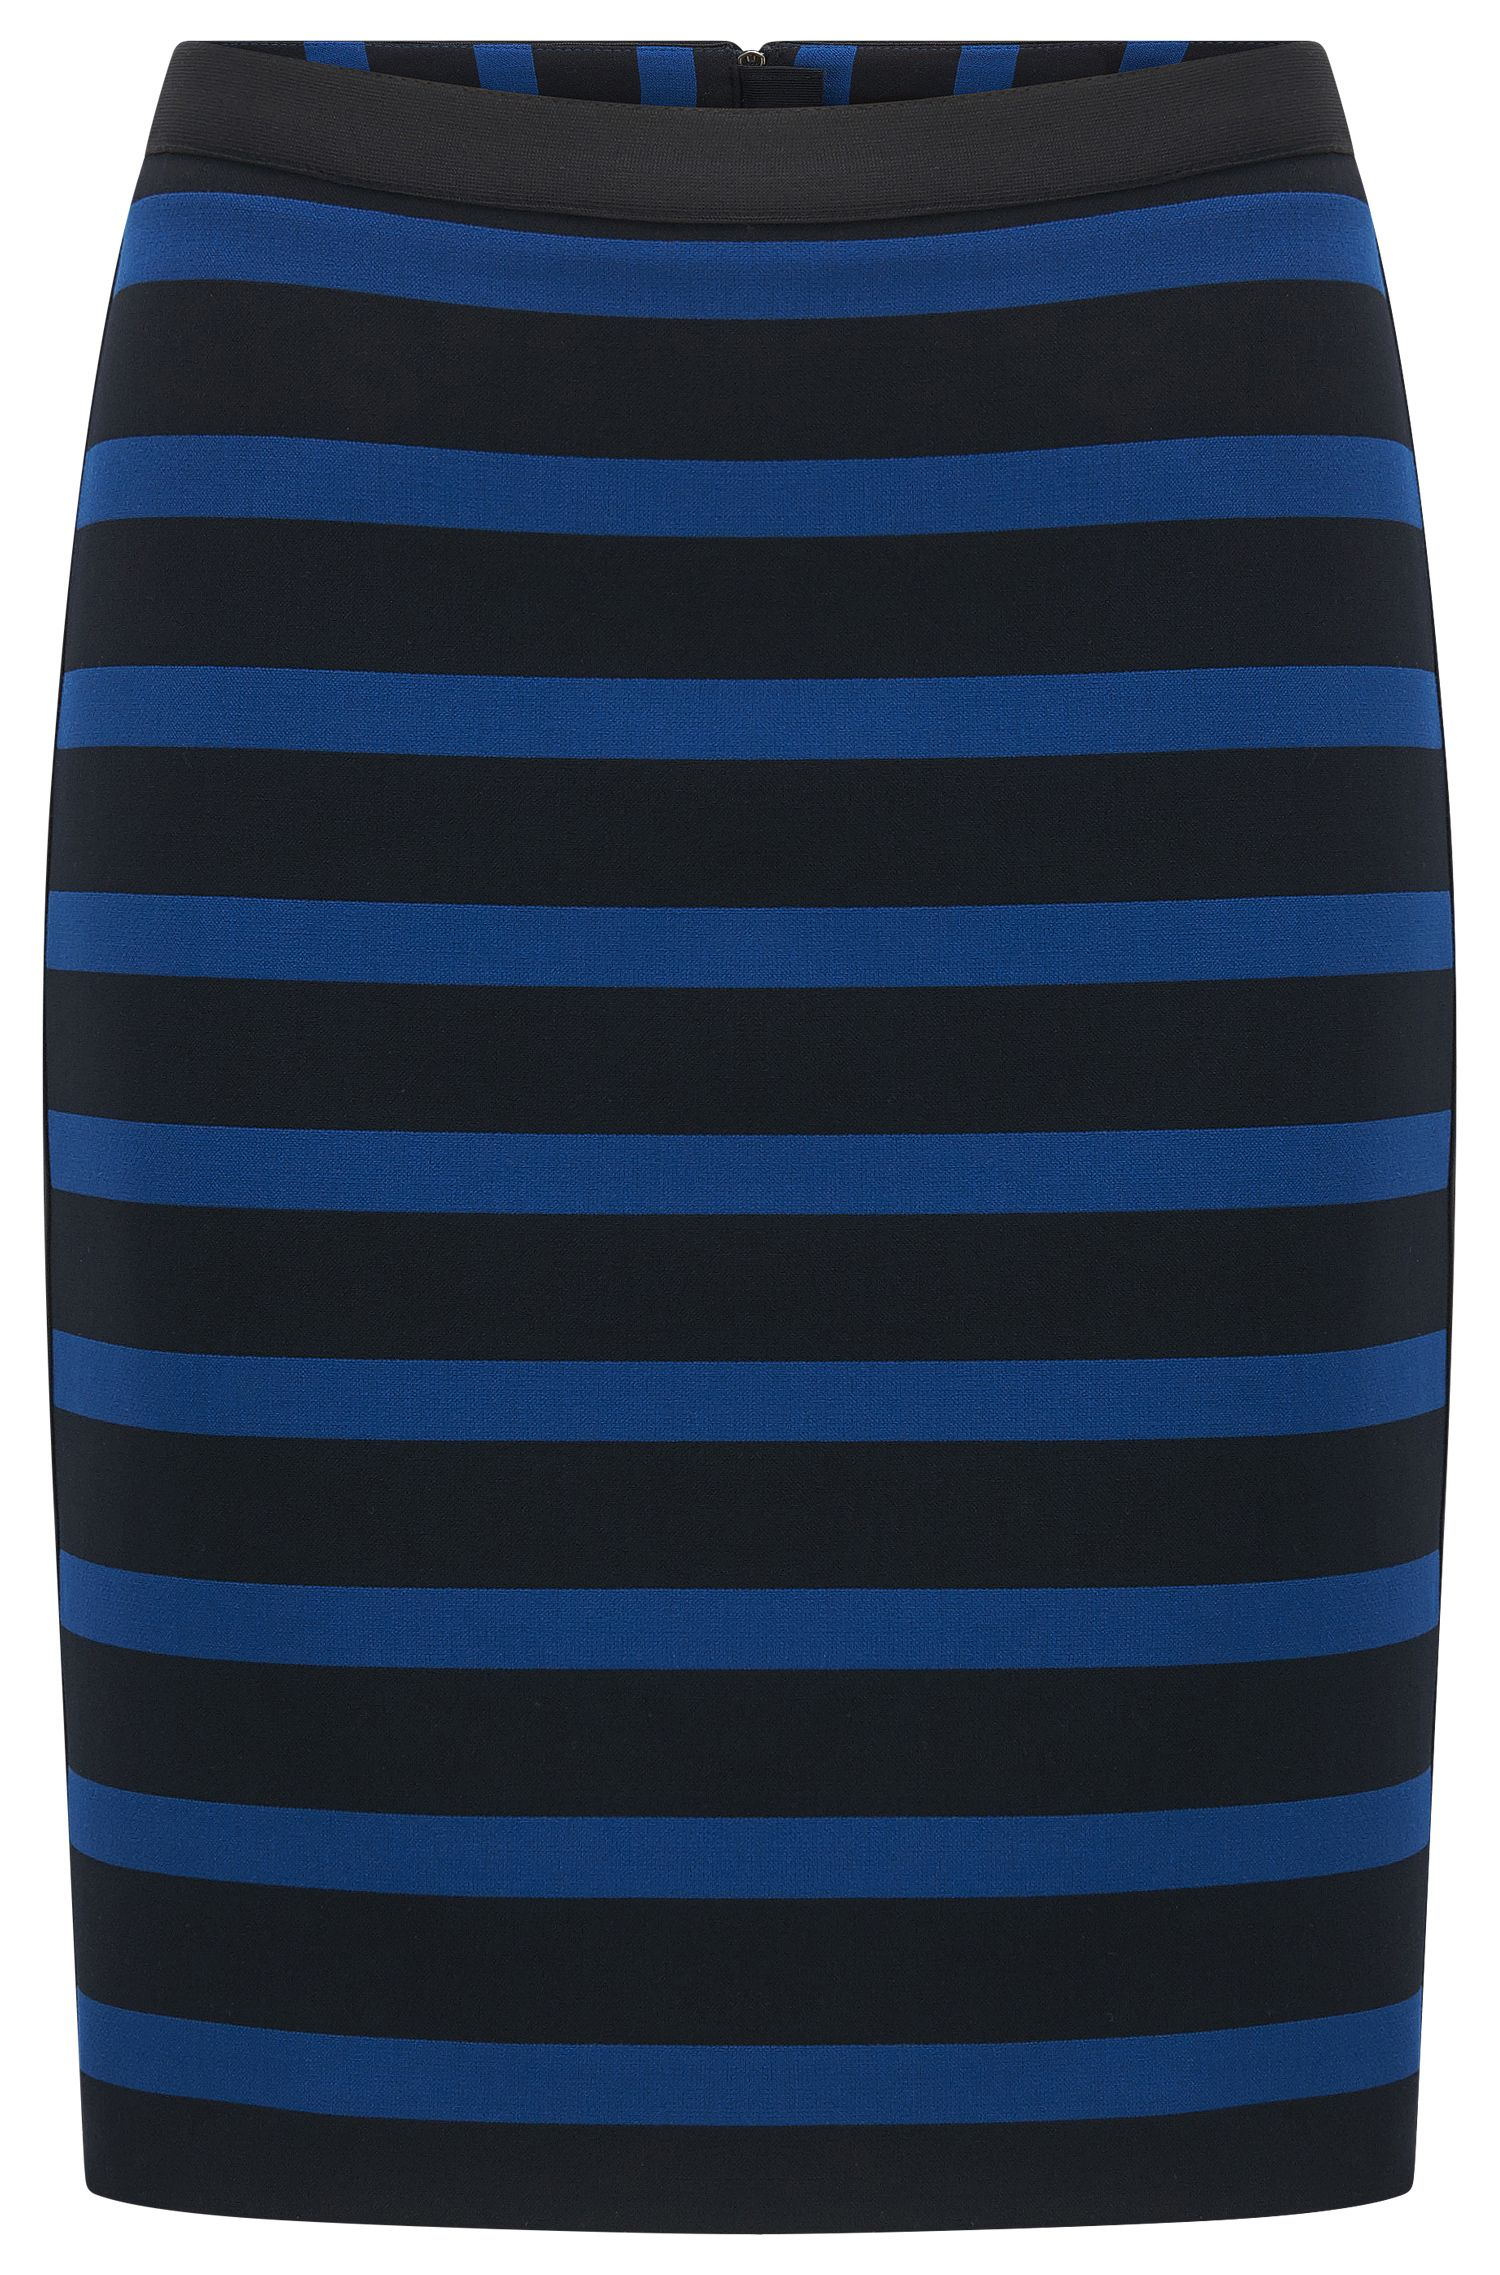 Slim-fit skirt in stripe stretch fabric